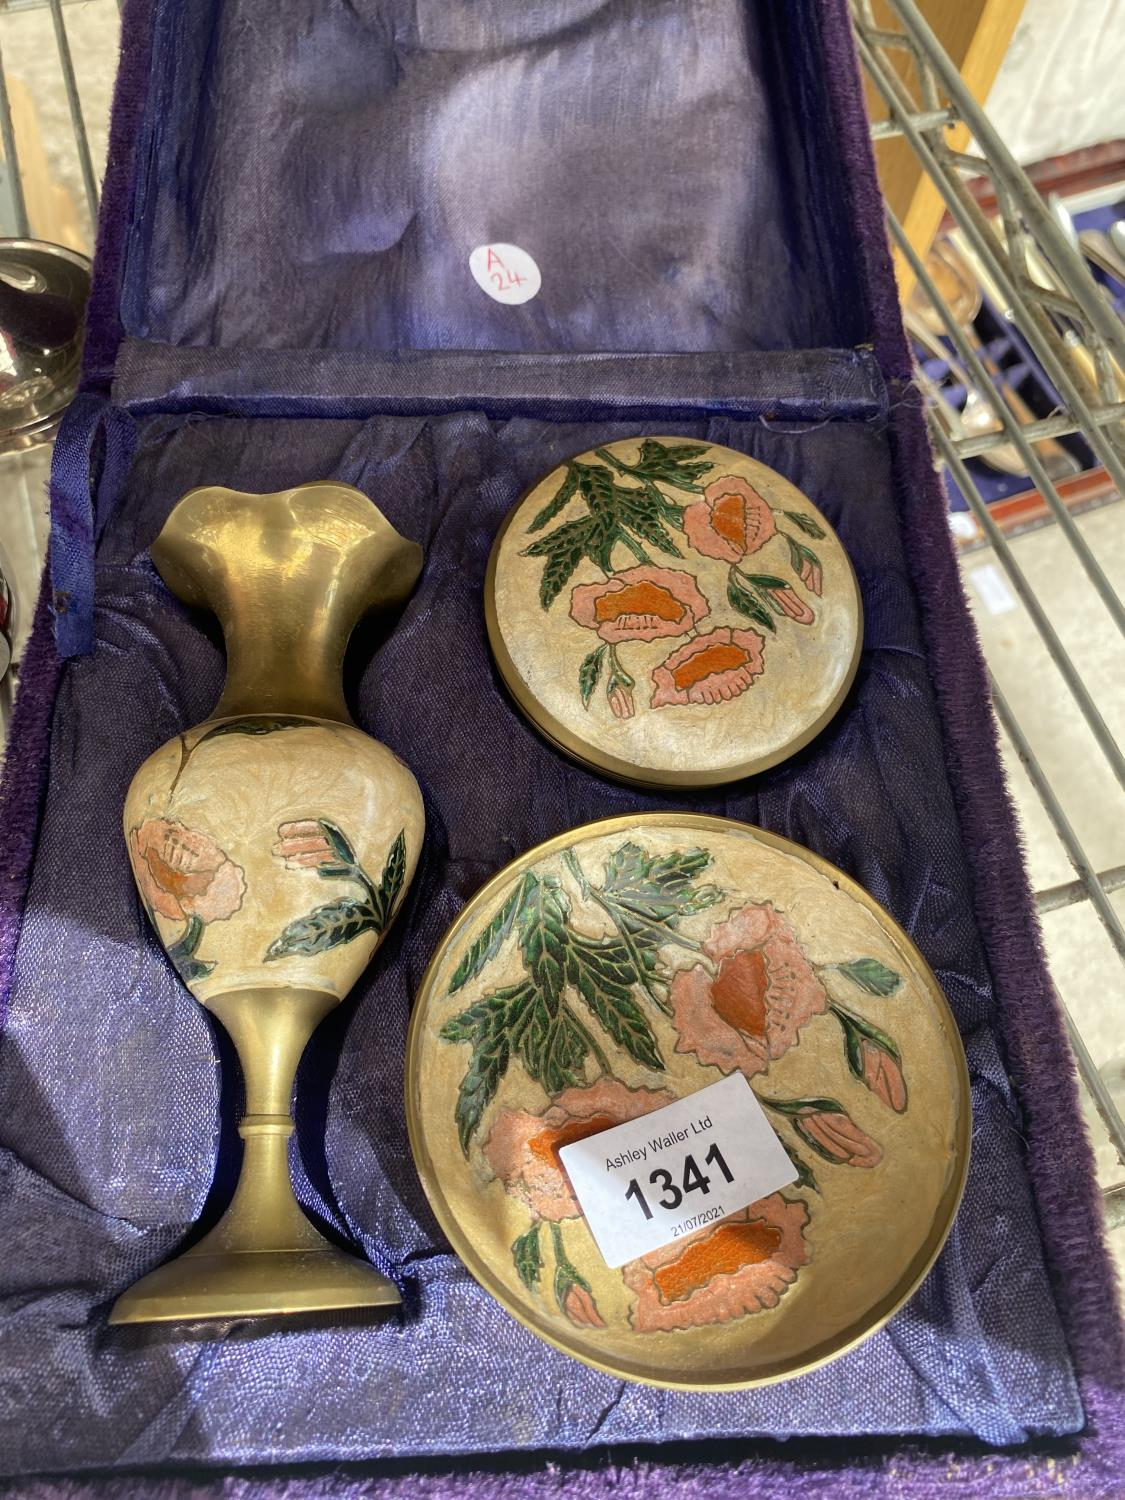 A BOXED BRASS VASE, TRINKET DISH AND TRINKET BOWL, WITH A SUGAR SHAKER AND A CANDLE HOLDER - Image 2 of 5